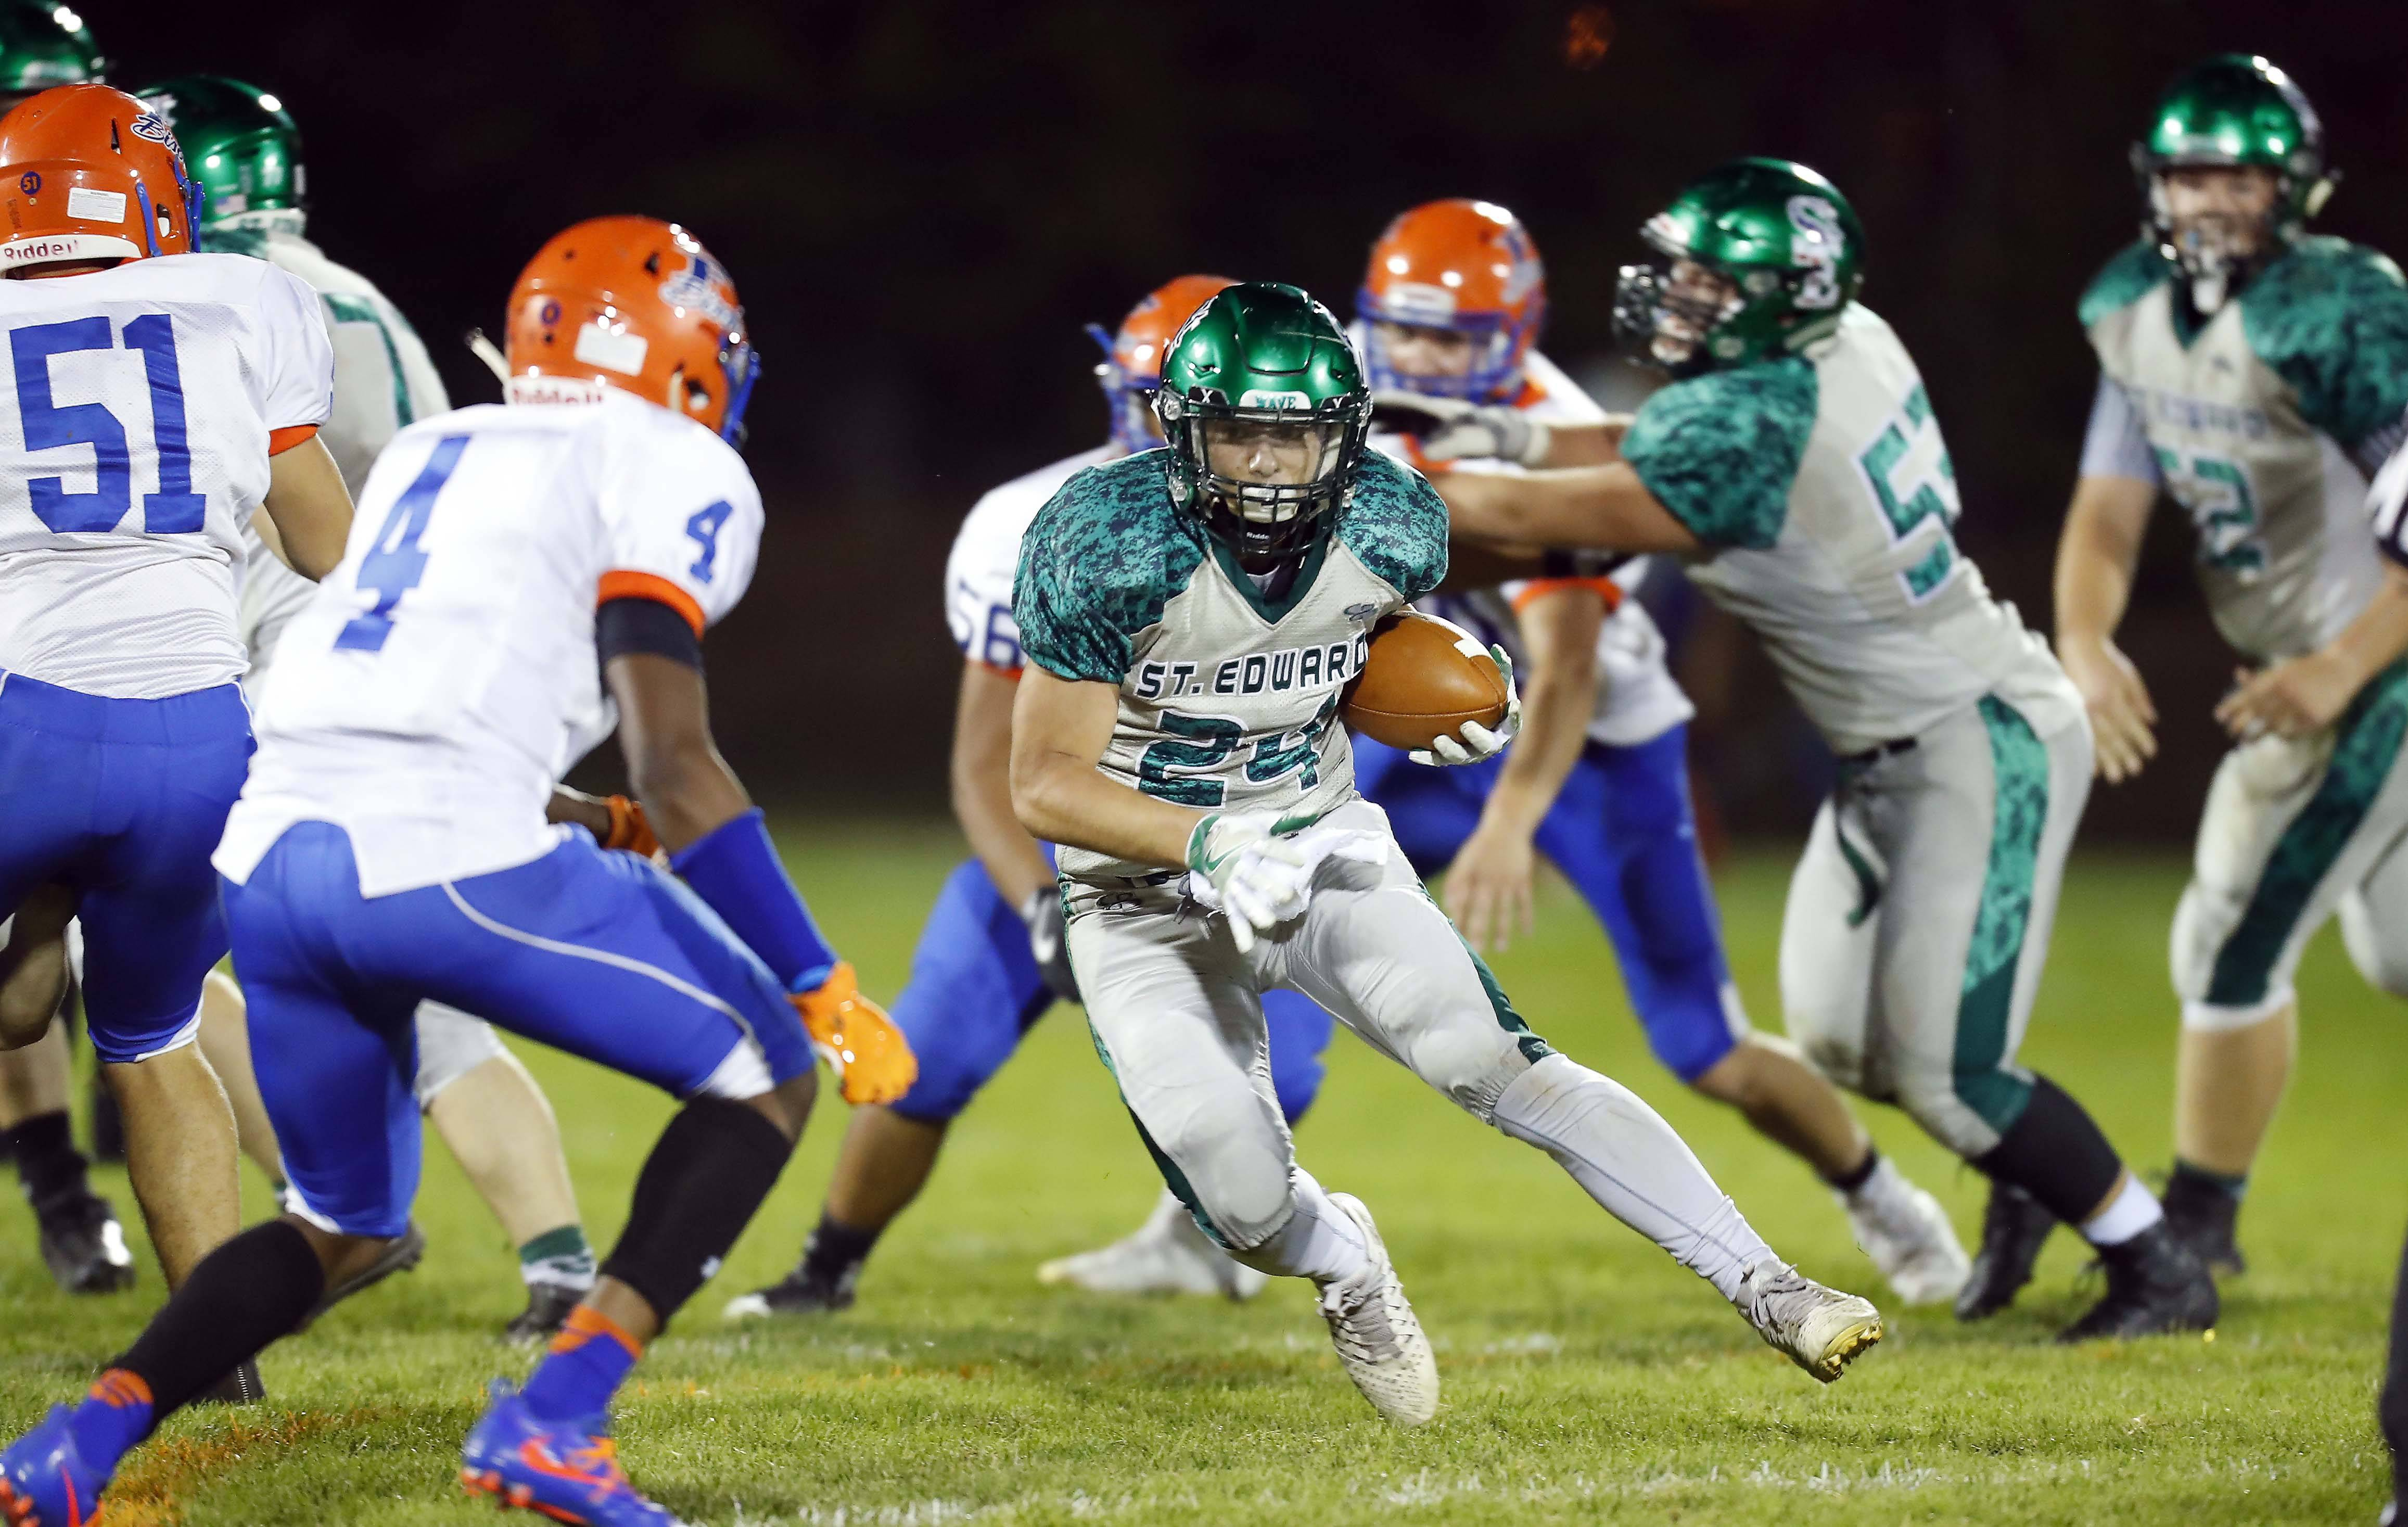 St. Edward's Angel Garcia (24) finds some running room Friday during Fenton at St. Edward football at Greg True Field in Elgin.